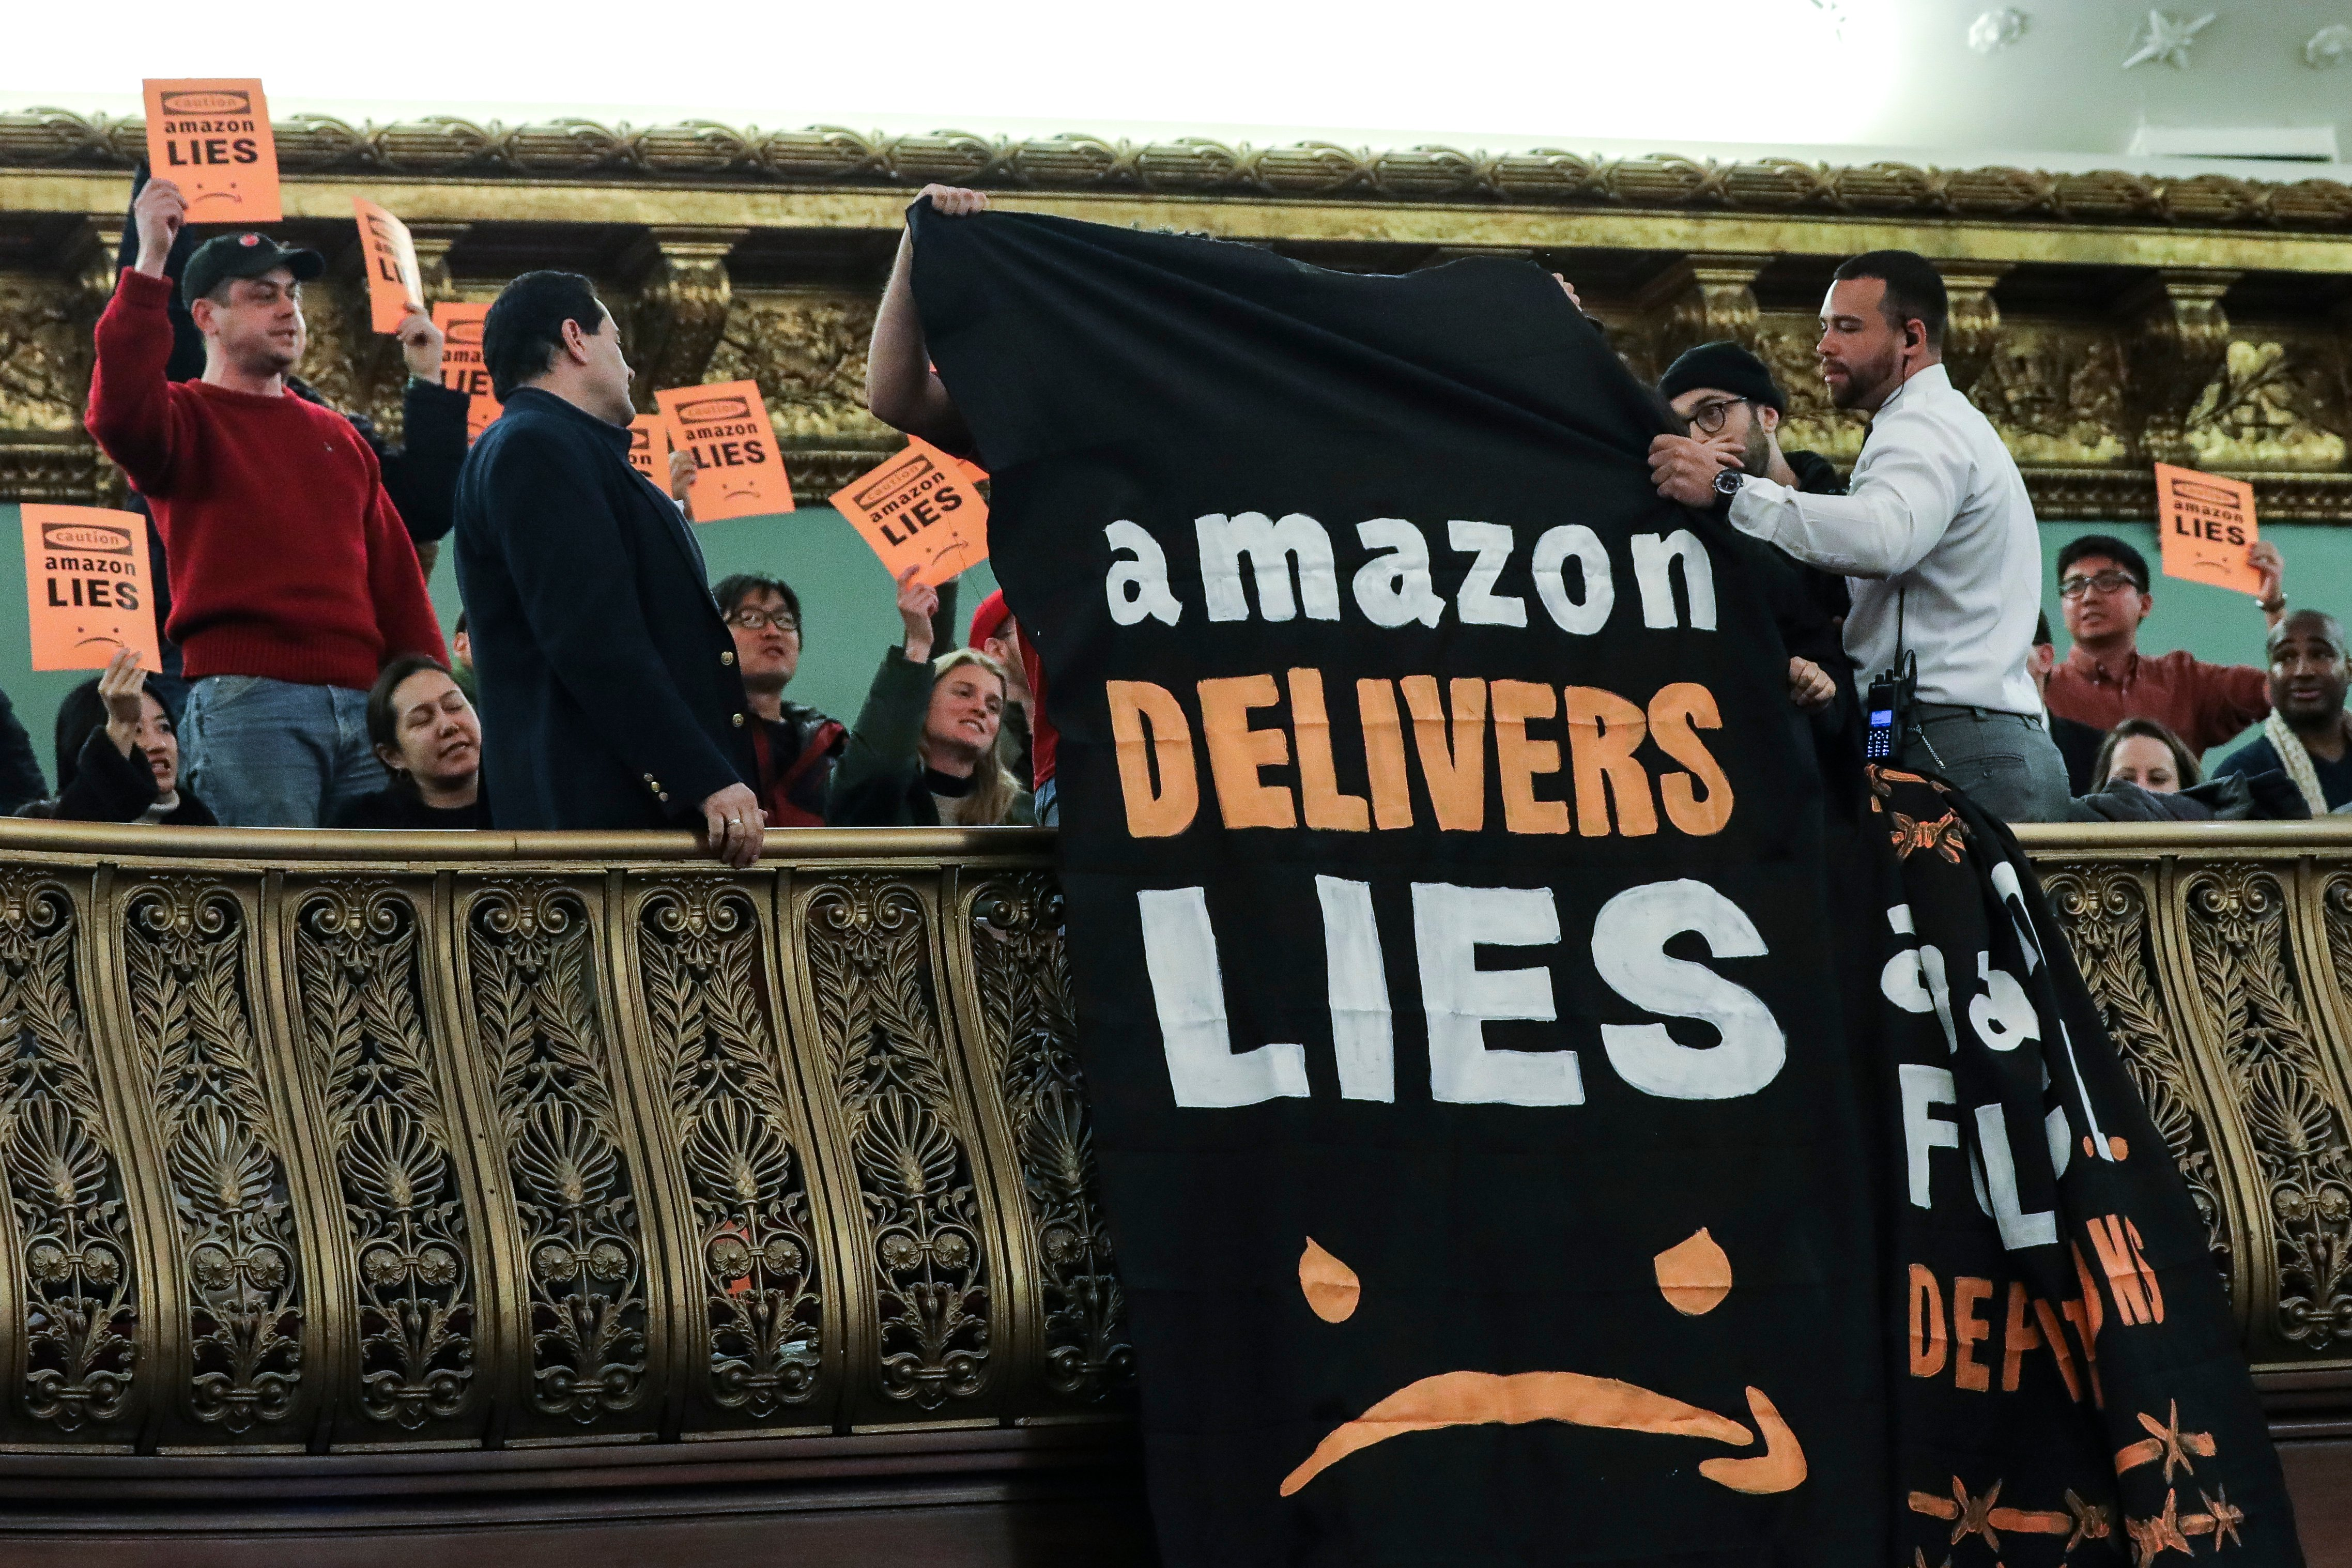 Amazon Makes $700 Million Investment To Retrain 100,000 Of Its US Employees By 2025 | The Daily Caller